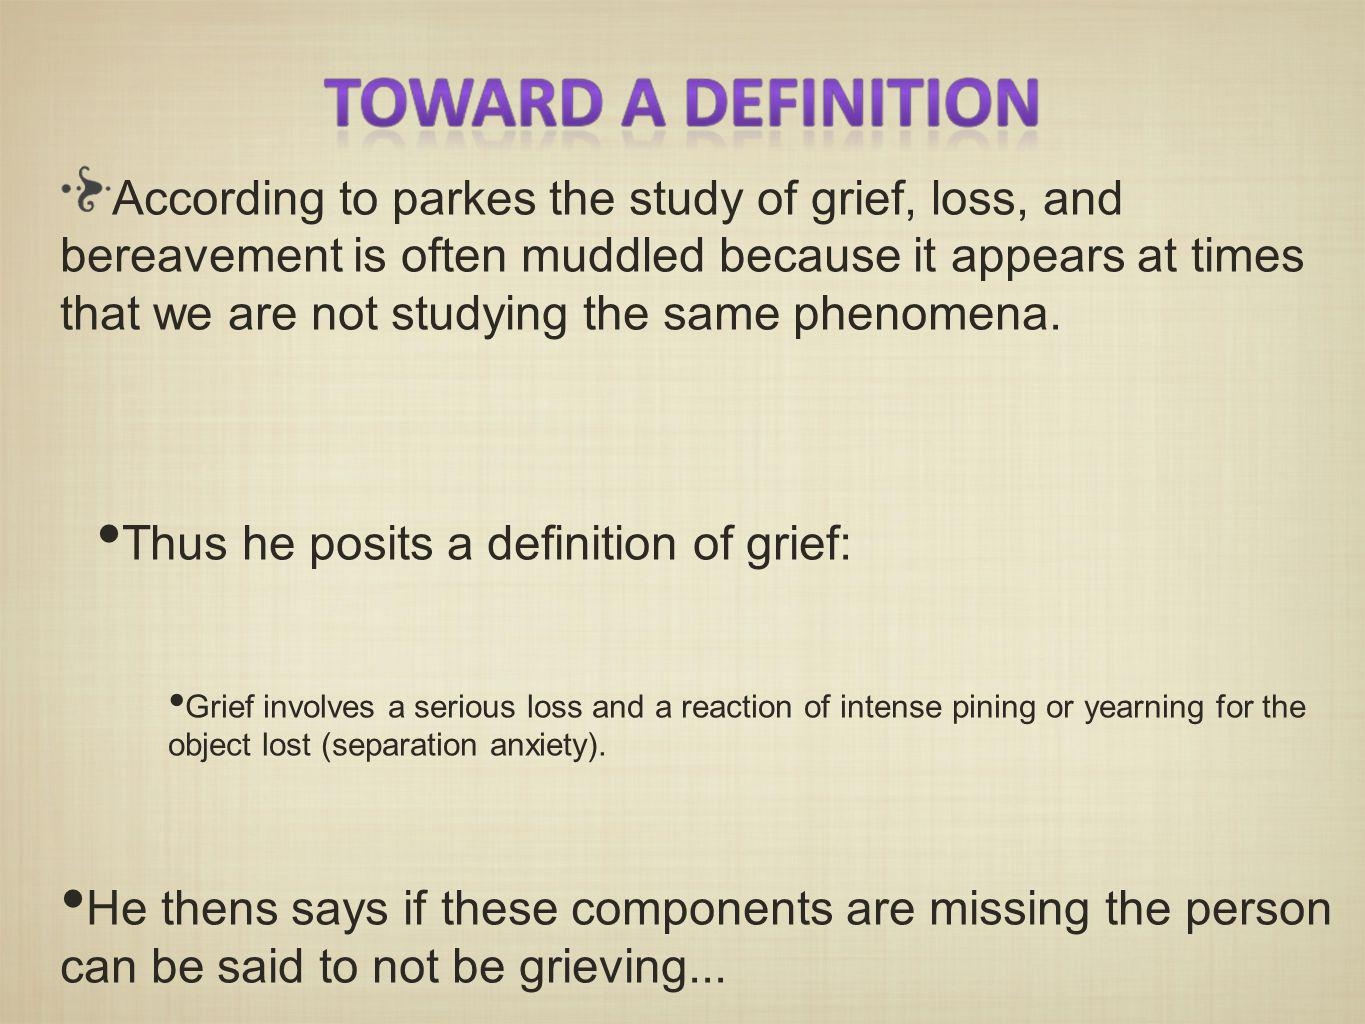 According to parkes the study of grief, loss, and bereavement is often muddled because it appears at times that we are not studying the same phenomena.